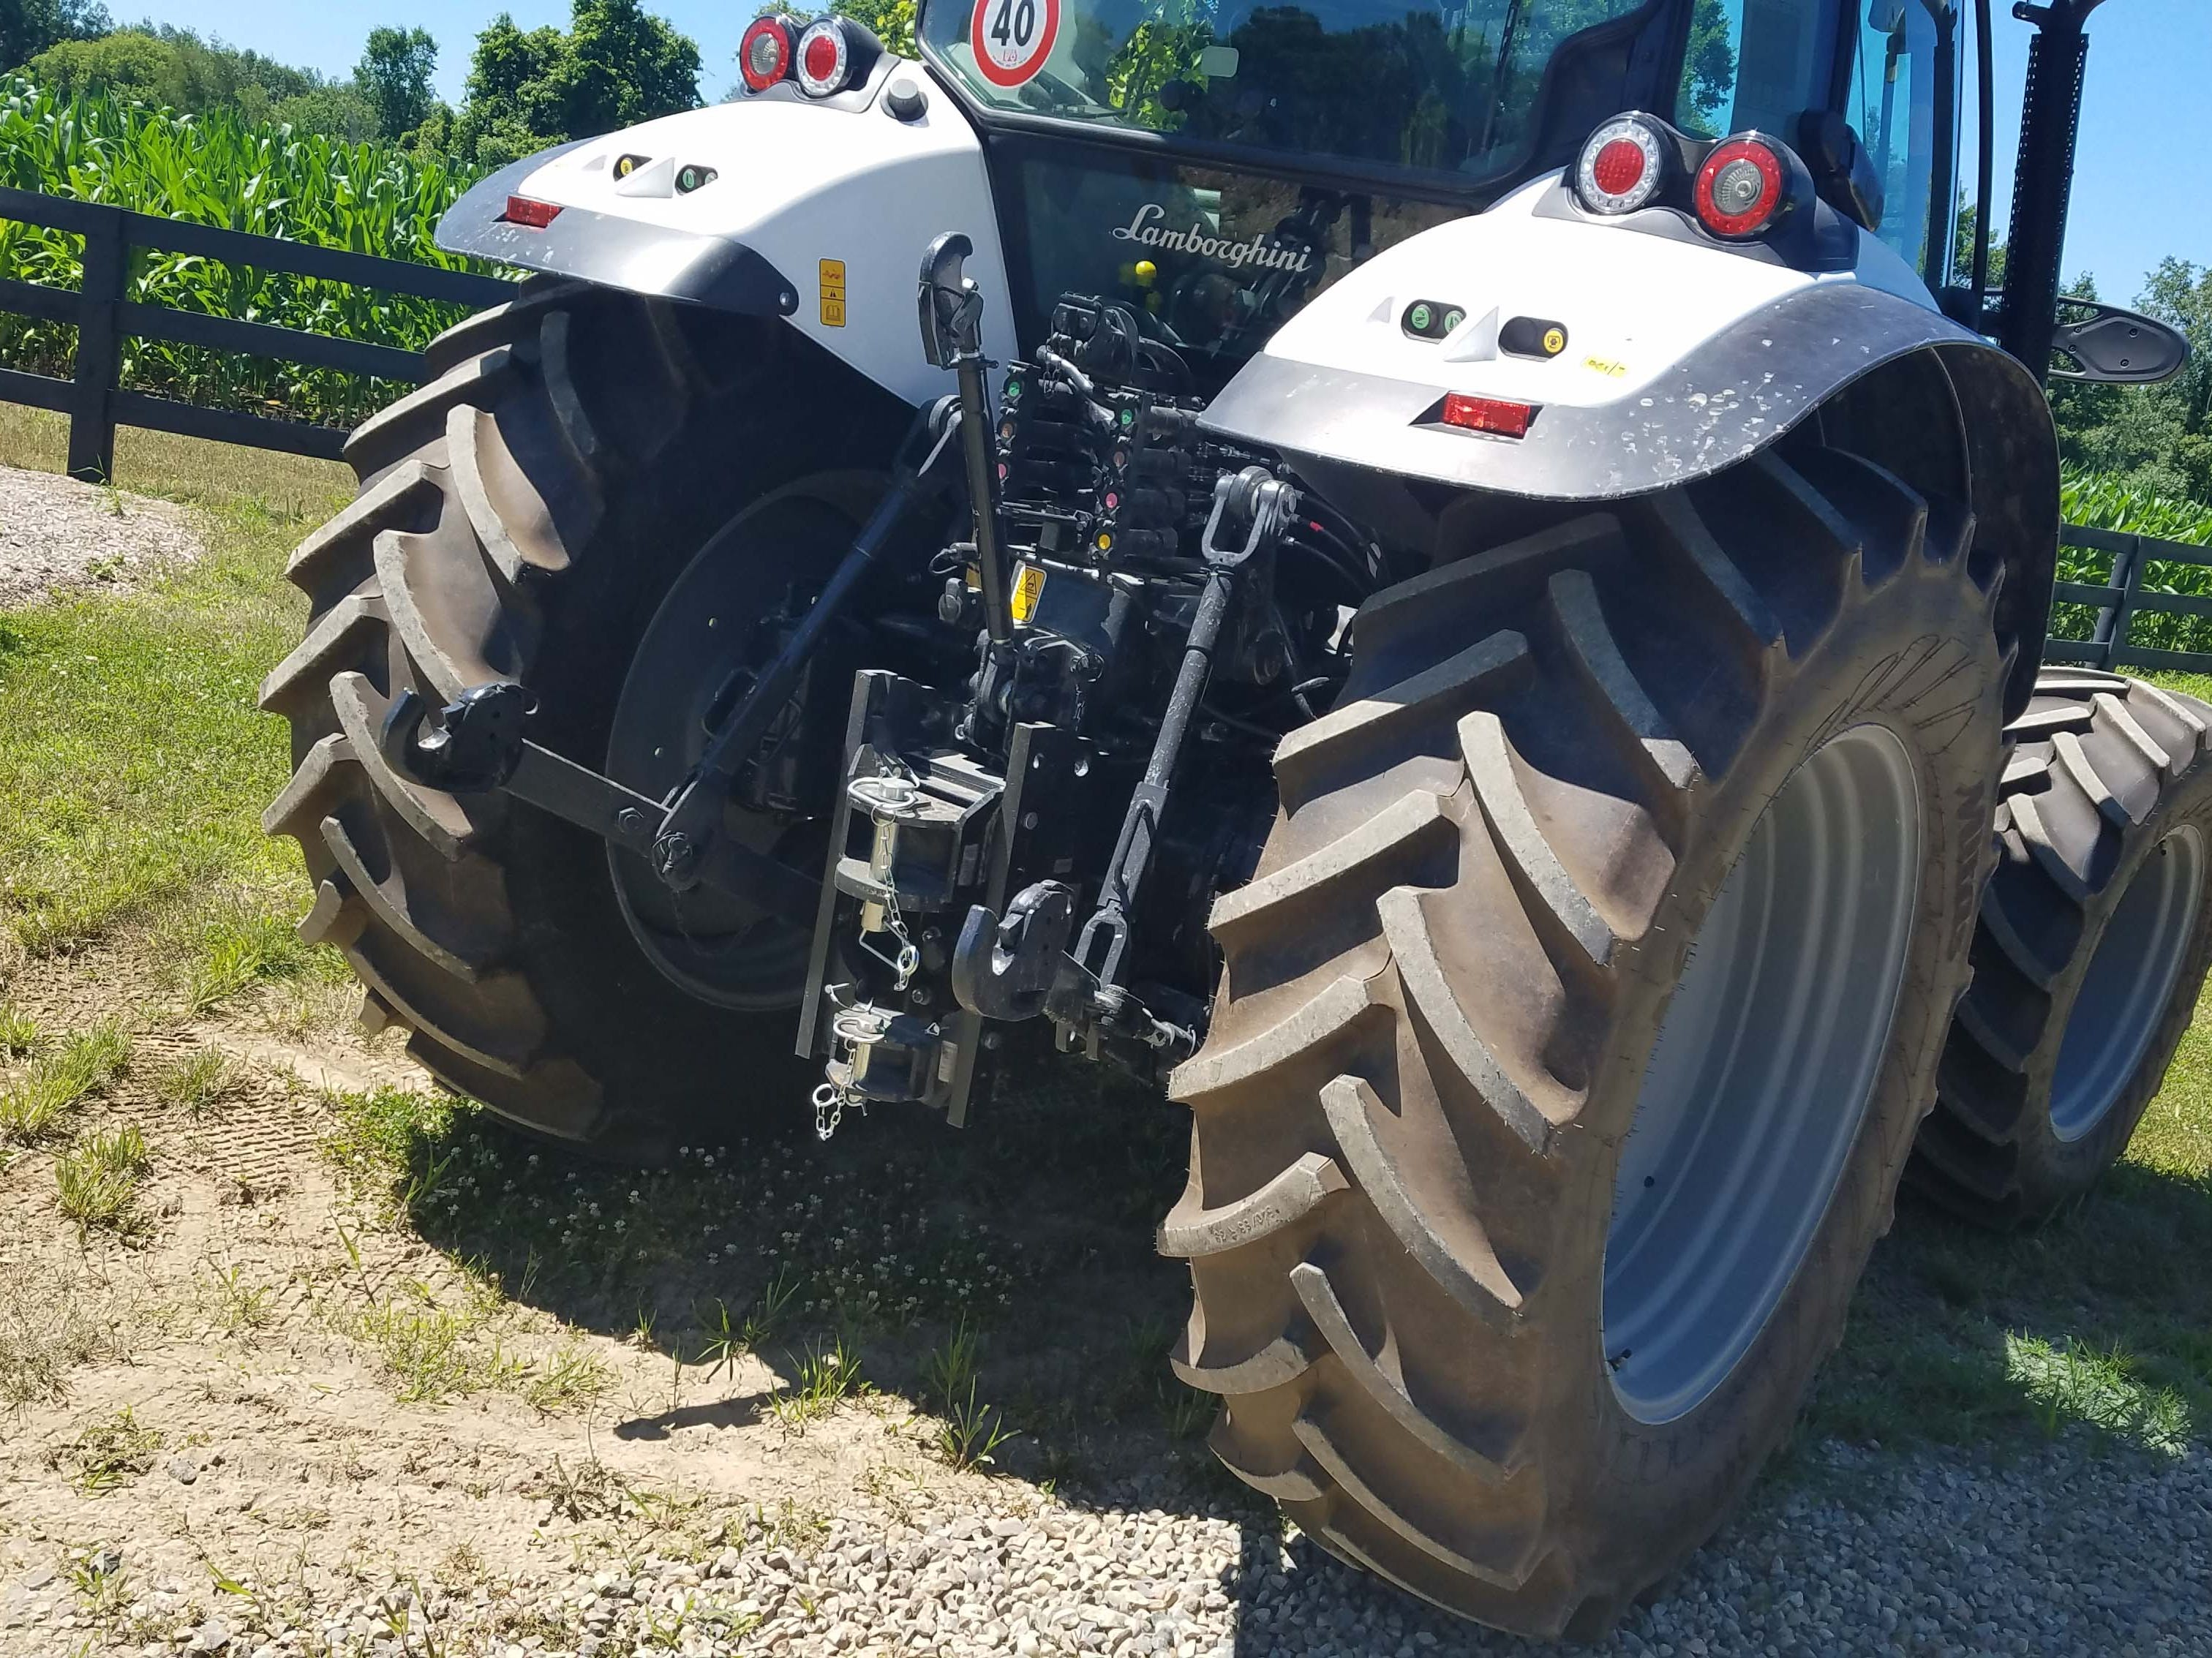 The business end of the Lamborghini Nitro. Its multiple electronic and hydraulic hookups are used for farm implements. The quick tractor also excels at high-speed operations with a front loader.